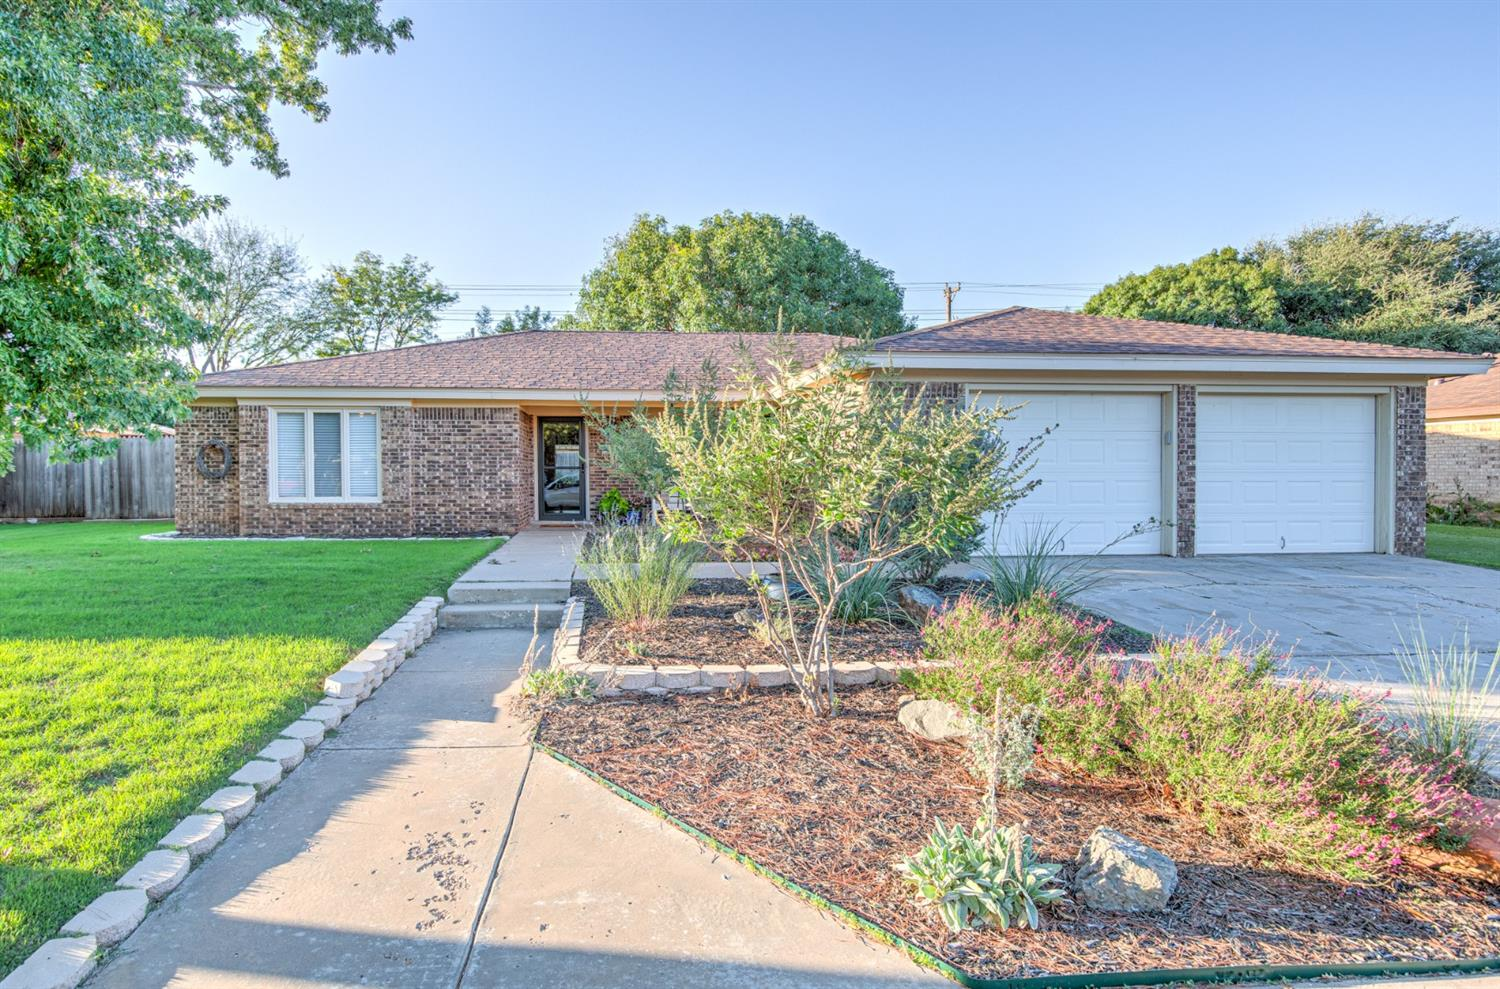 Previous owner did a fabulous job updating; carpet only in bedrooms;striking kitchen has great color and countertops, stainless appliances, large breakfast area, pantry;master bath has spa tub and large shower (new with previous owner)plus a large closet;  guest wing is very unique - bonus room attached to 3rd bedroom would be perfect for play area or study area or even a parent that lives with family would have their own living area.  Formal dining looks into family room - wall has been removed.  Backyard is very nice and inviting  Don't miss this rare find for this  price!!!